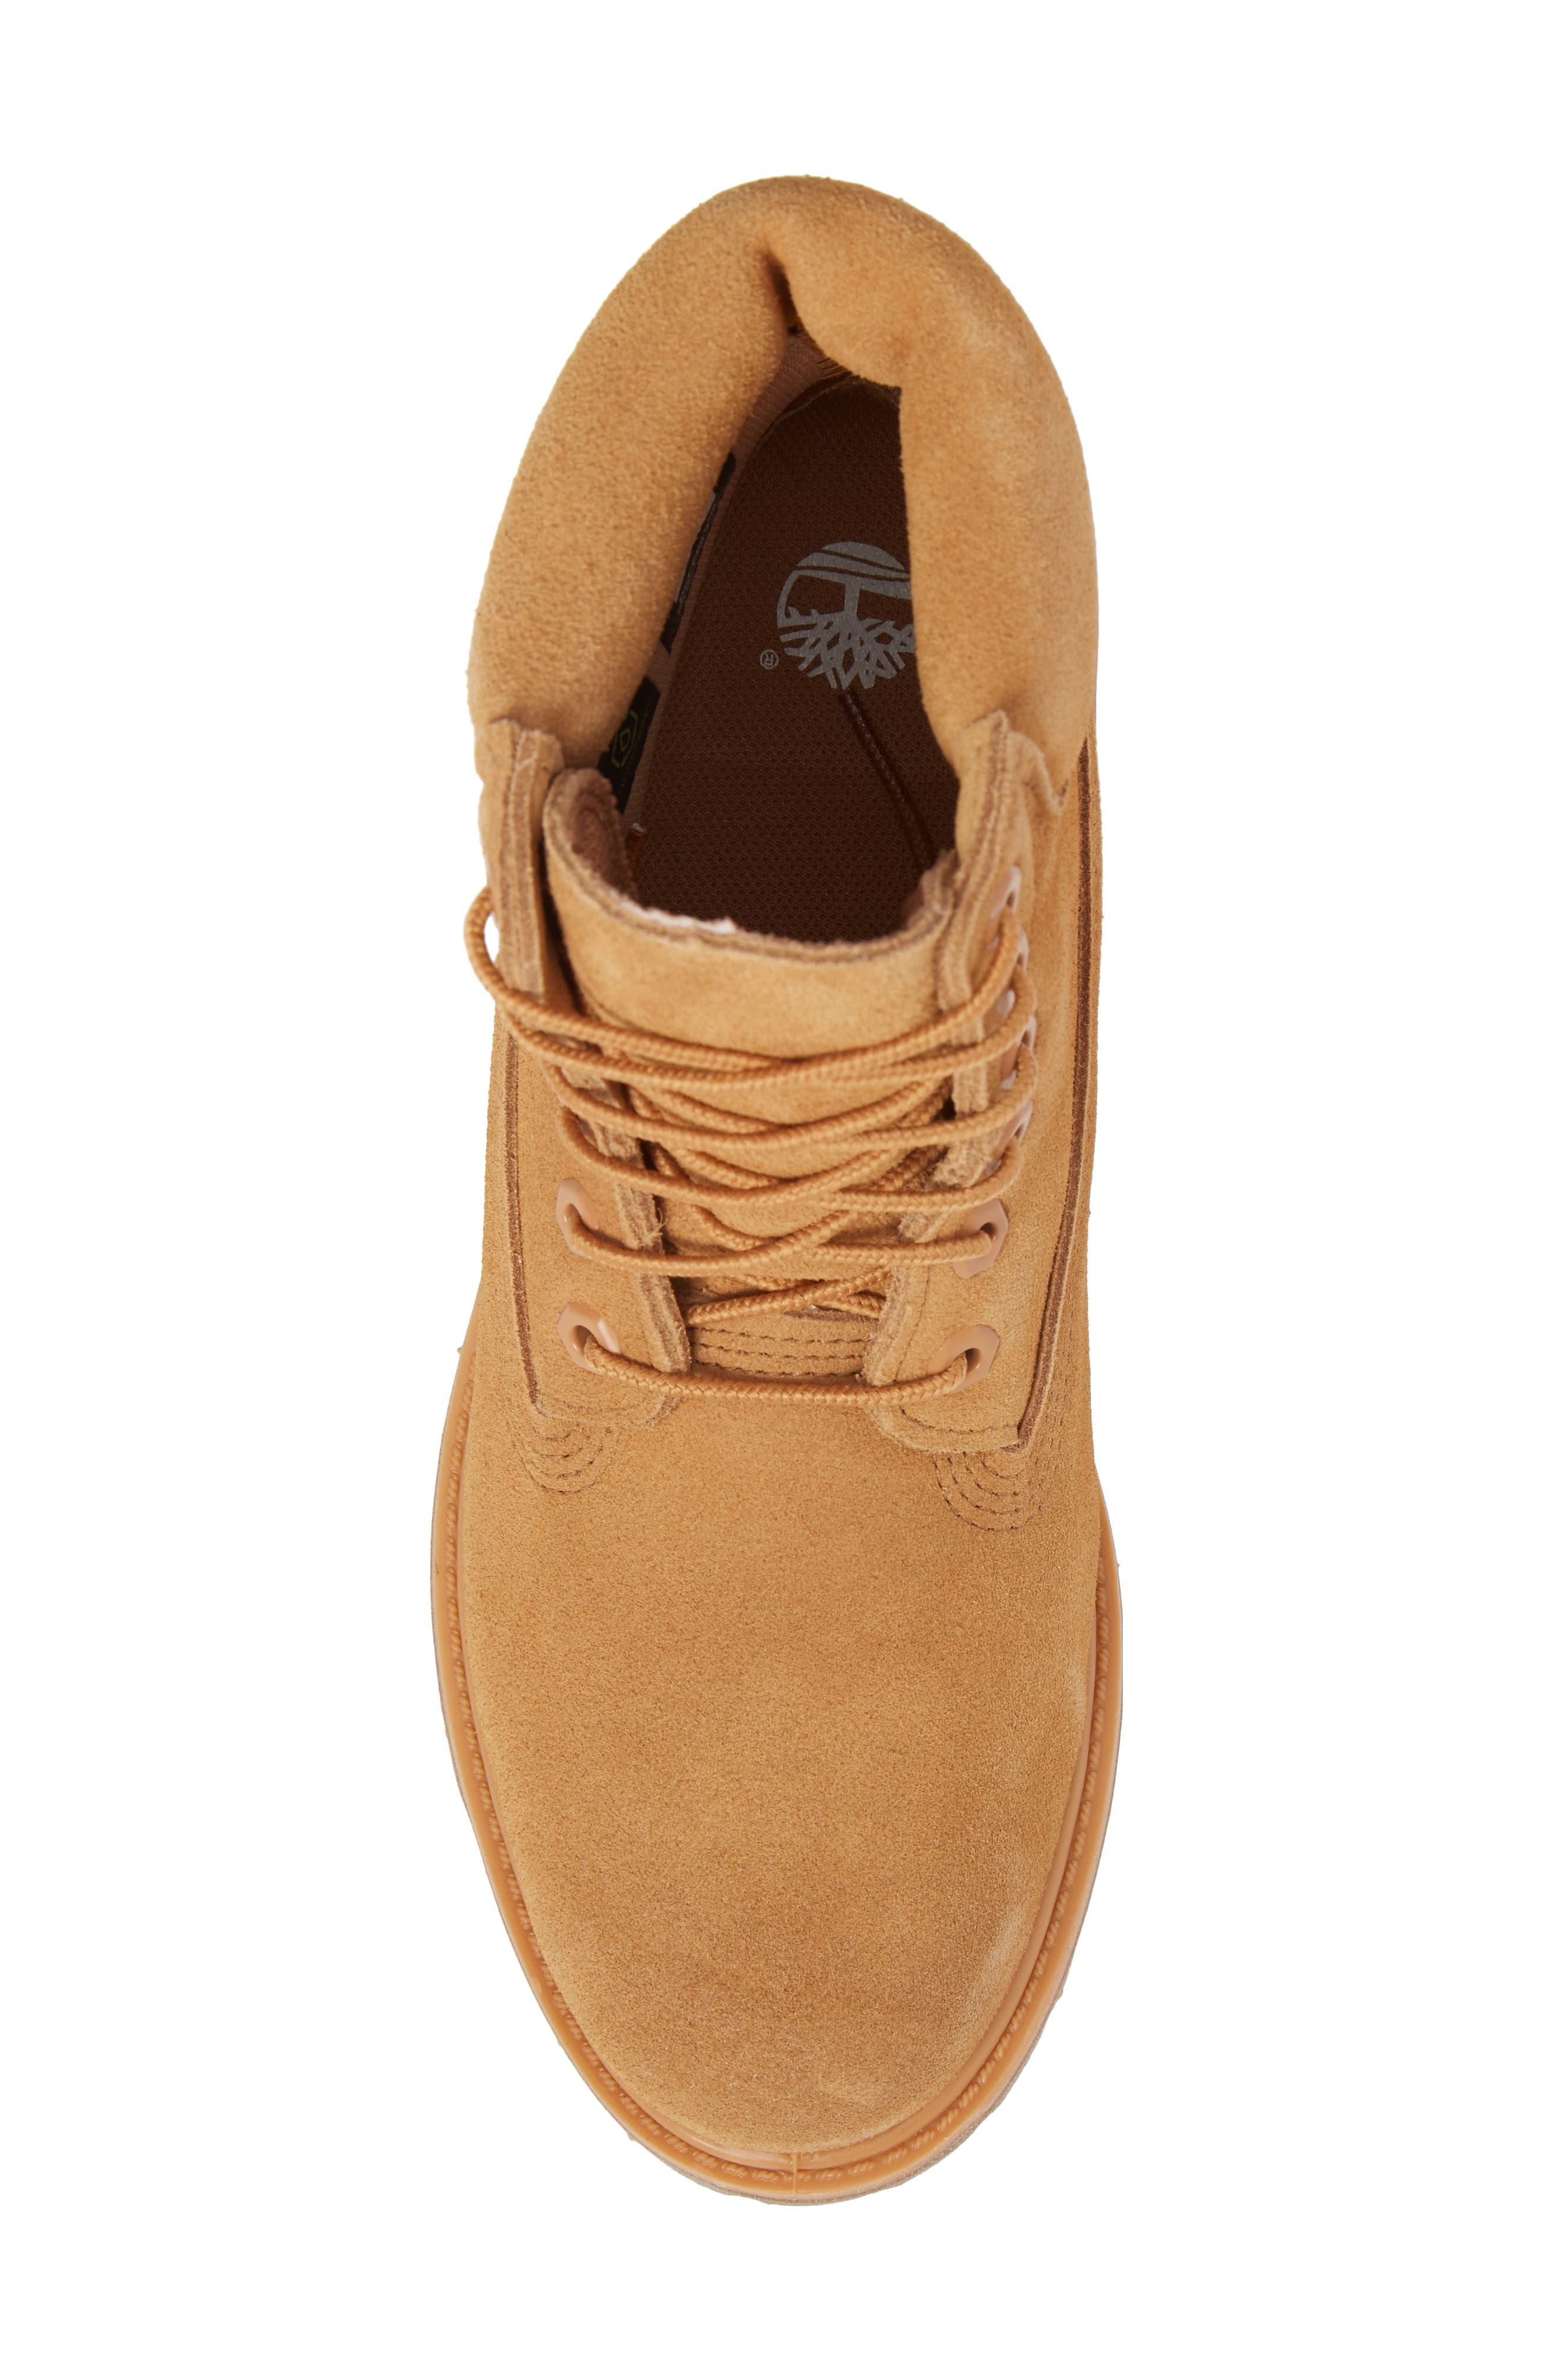 6 Inch Boot,                             Alternate thumbnail 5, color,                             Biscuit Nubuck Leather